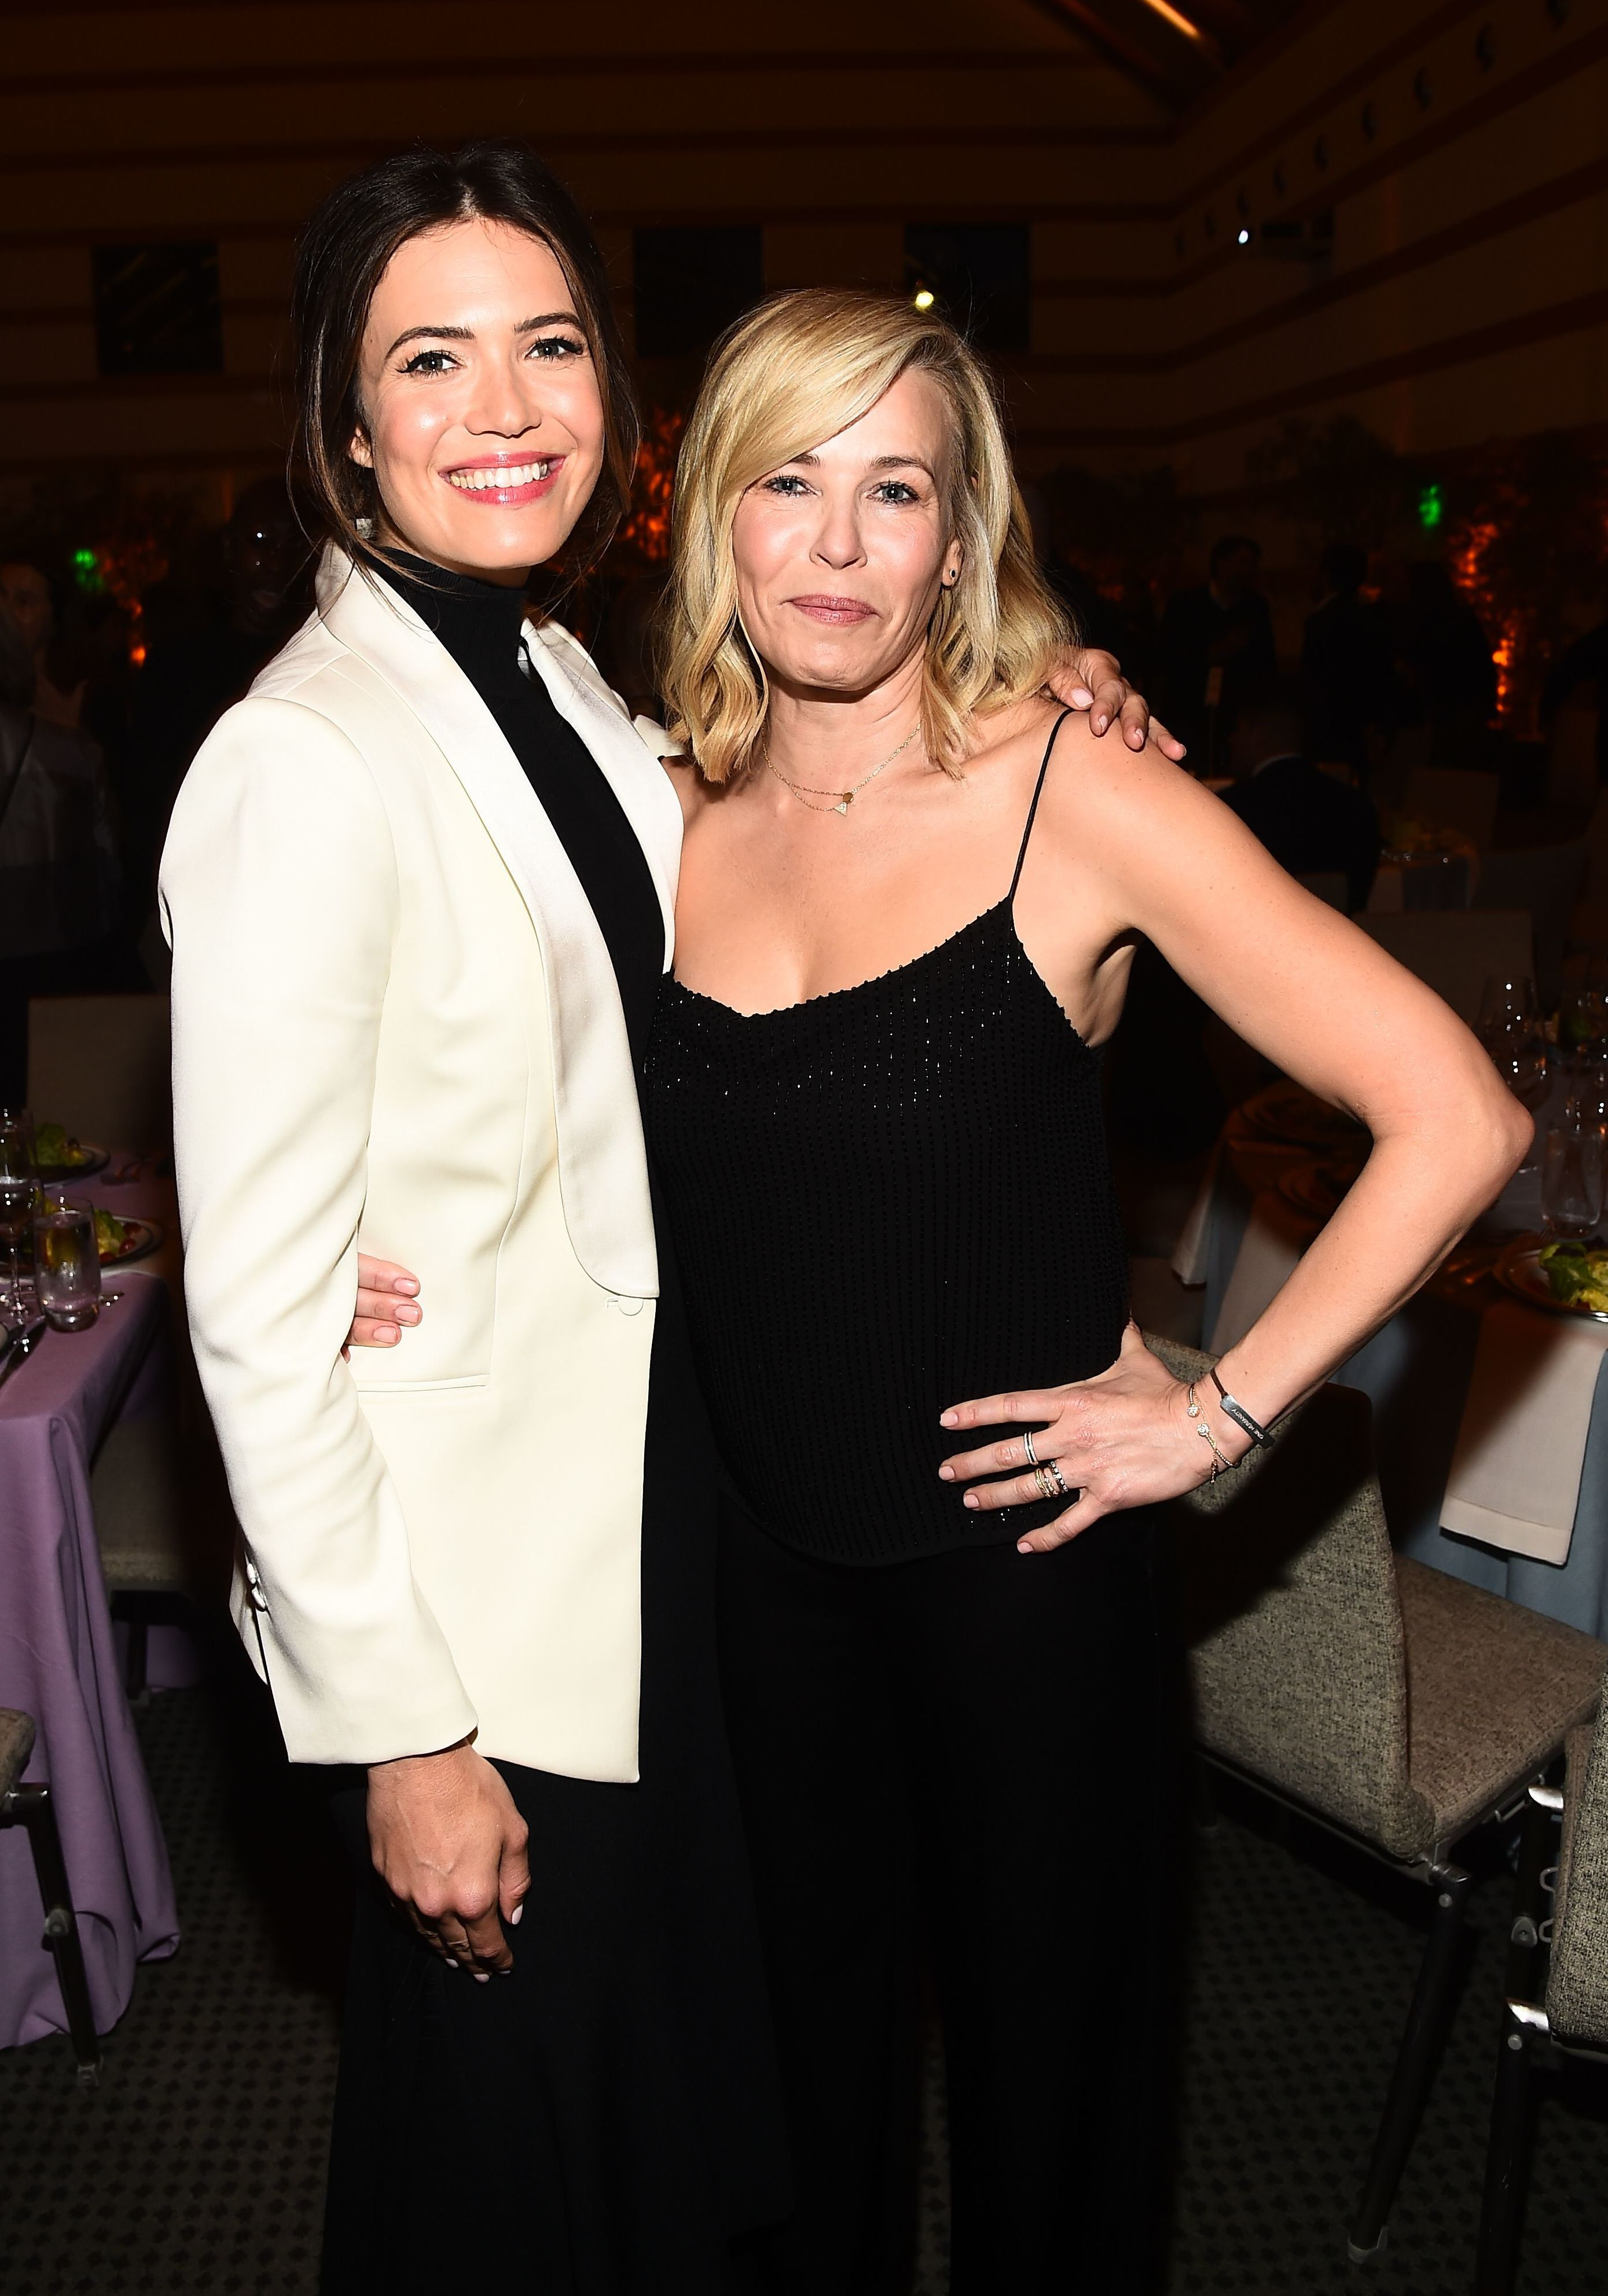 Mandy Moore and Chelsea Handler attend the Communities In Schools Annual Celebration in Los Angeles on May 1, 2018.